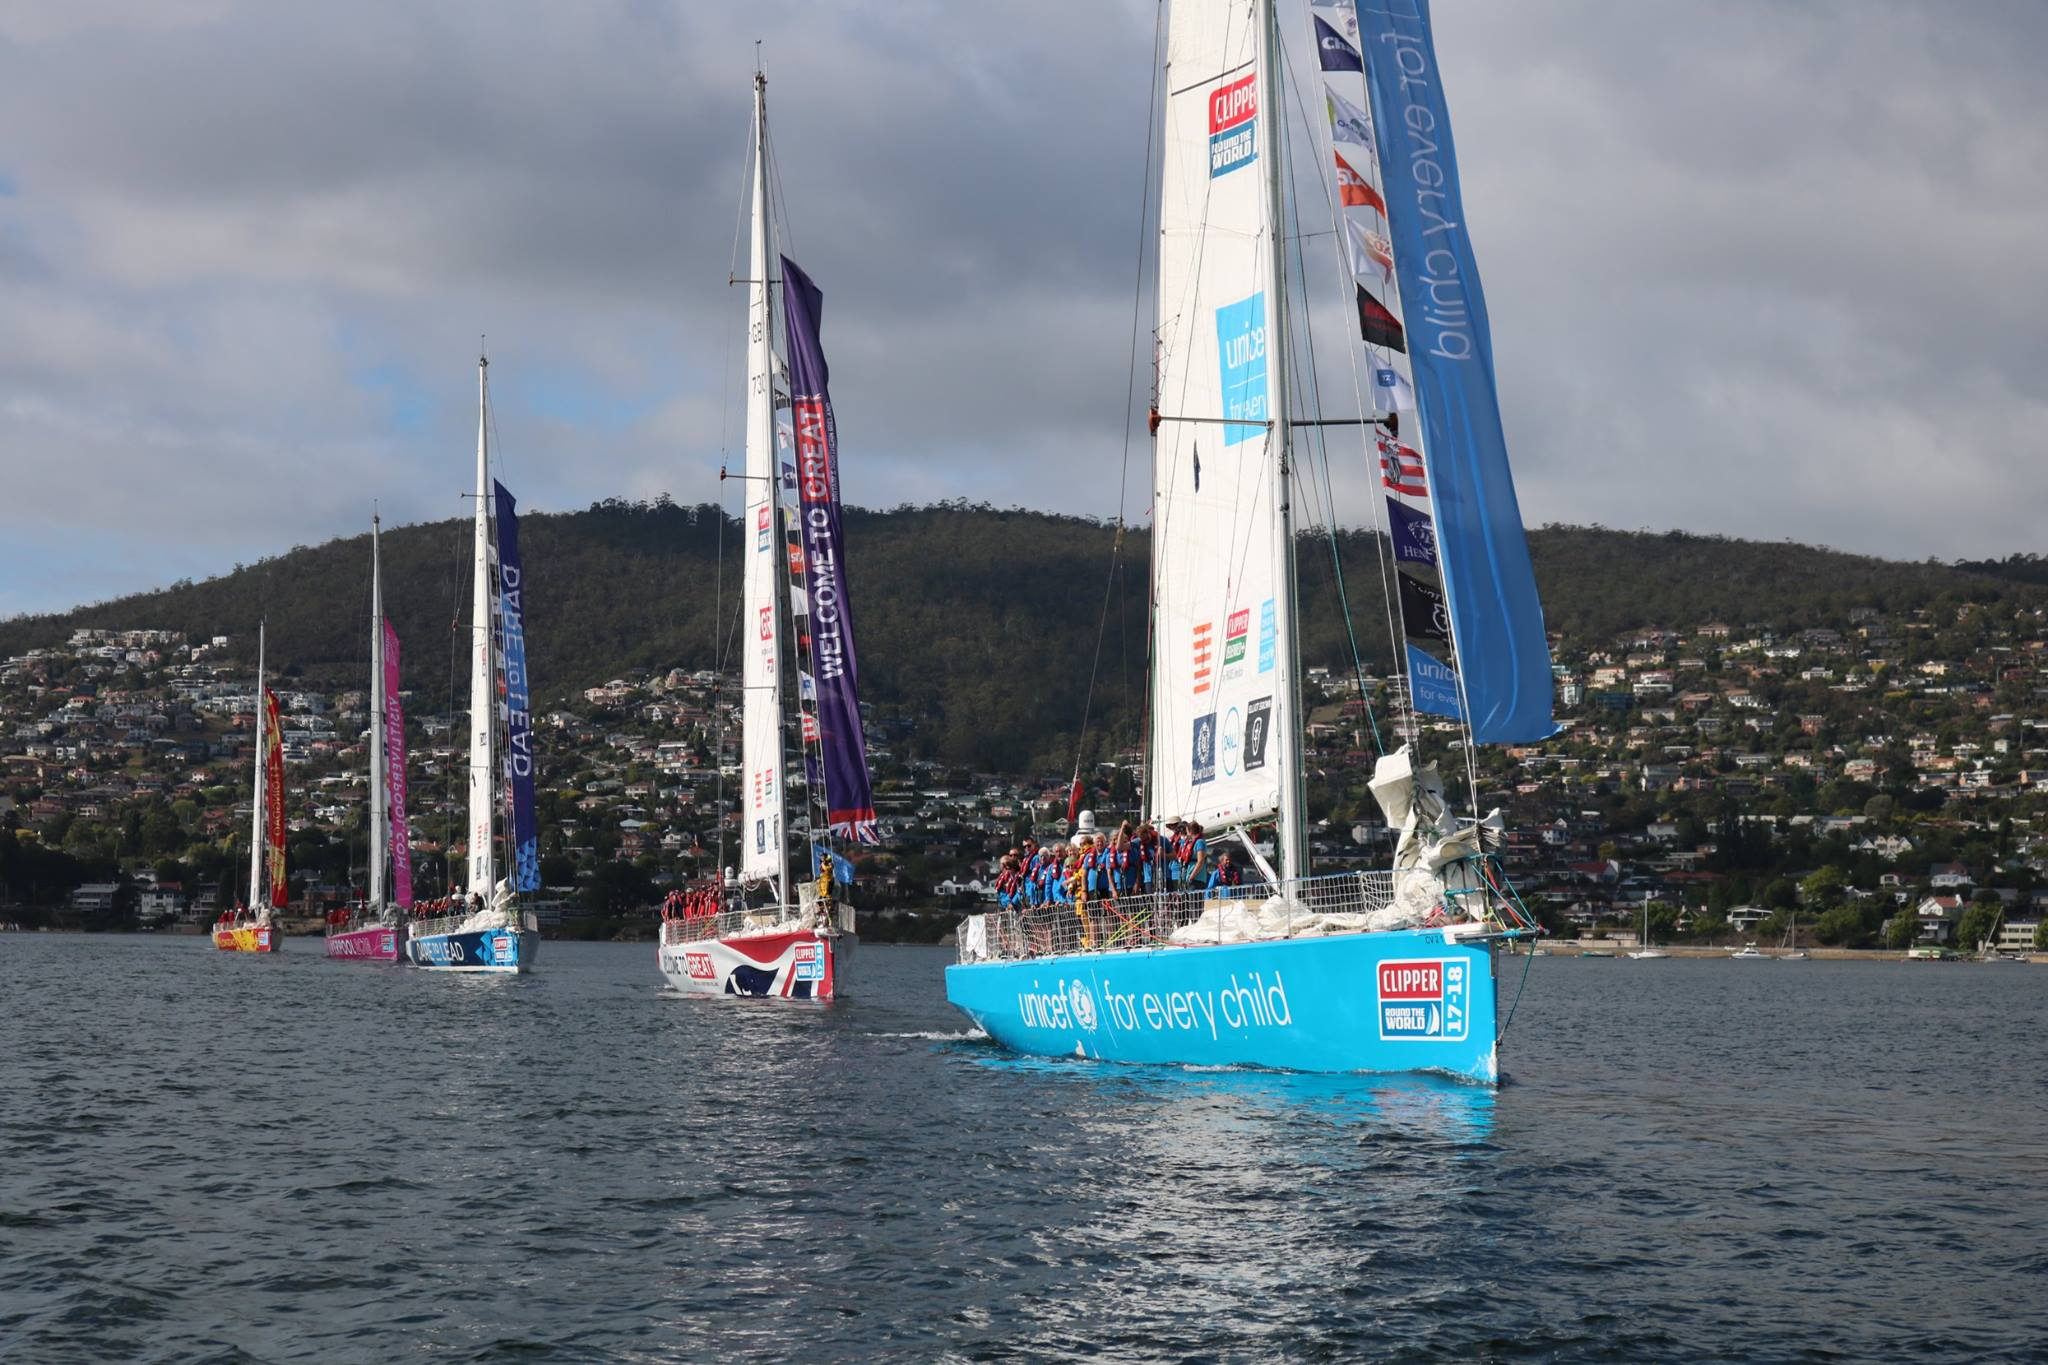 Clipper Race fleet to sail into Whitsundays in just one week's time!